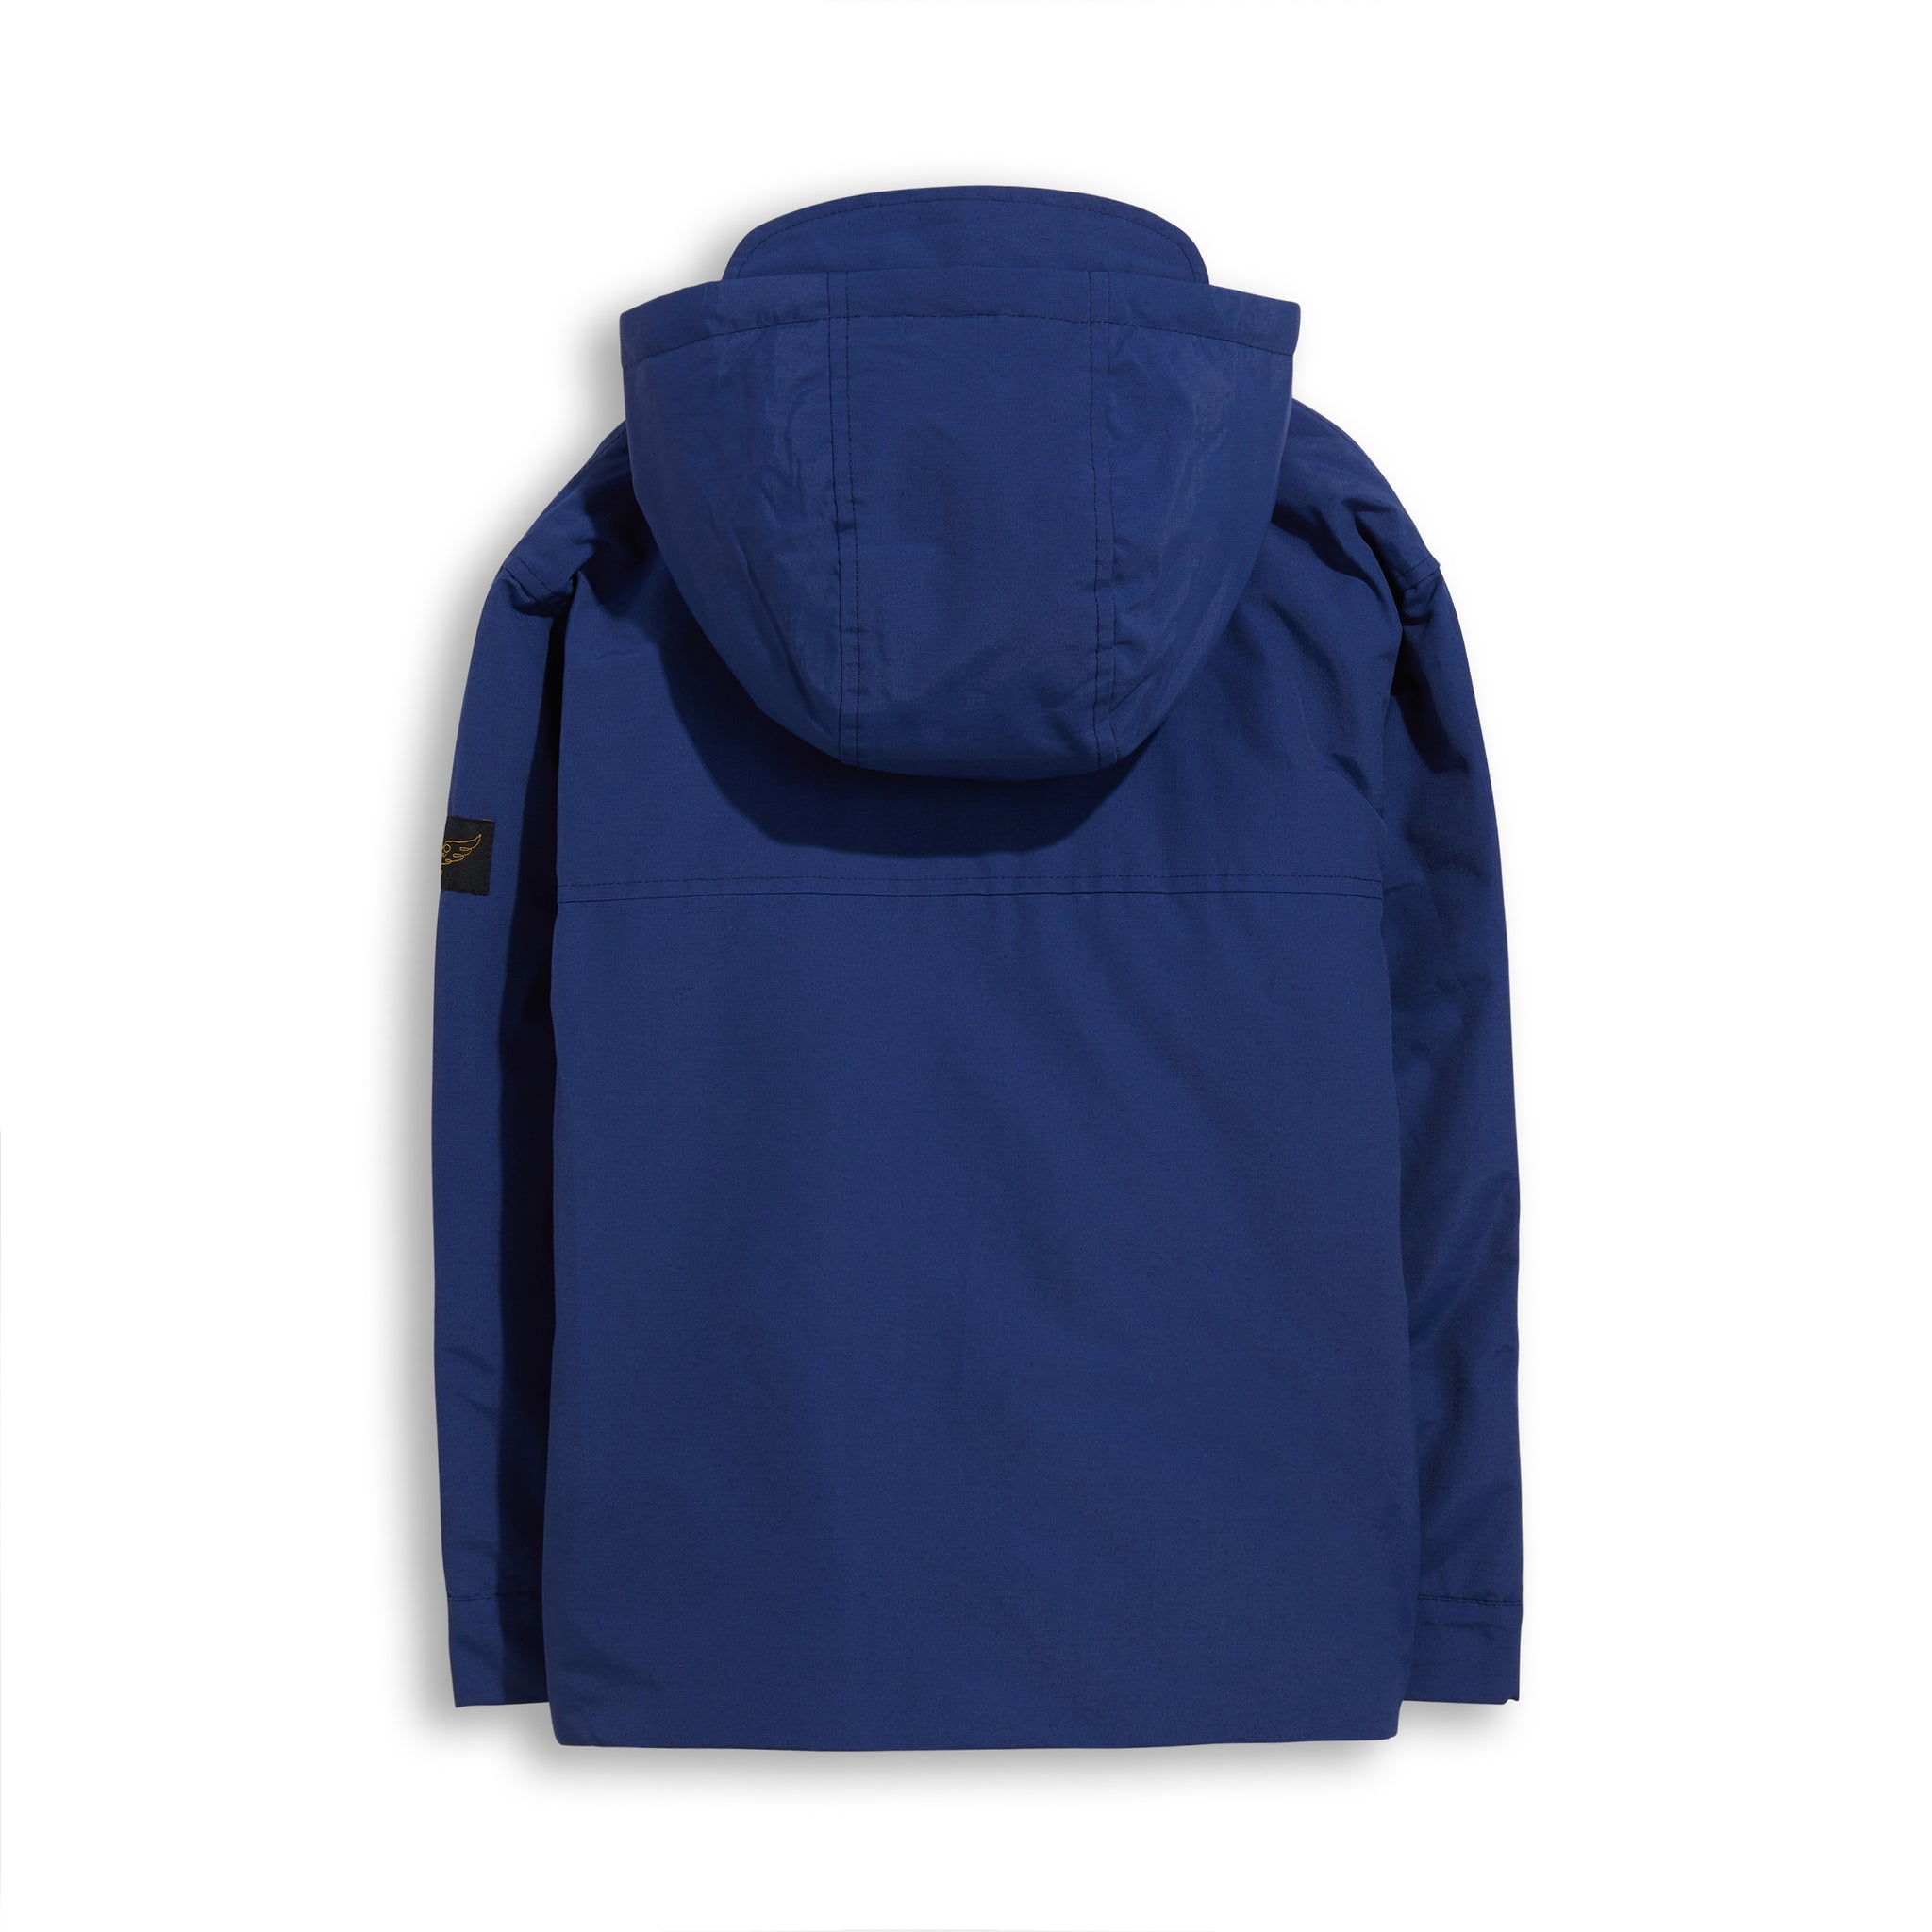 ZEPHYR Royal Blue -  Windbreaker Jacket 2